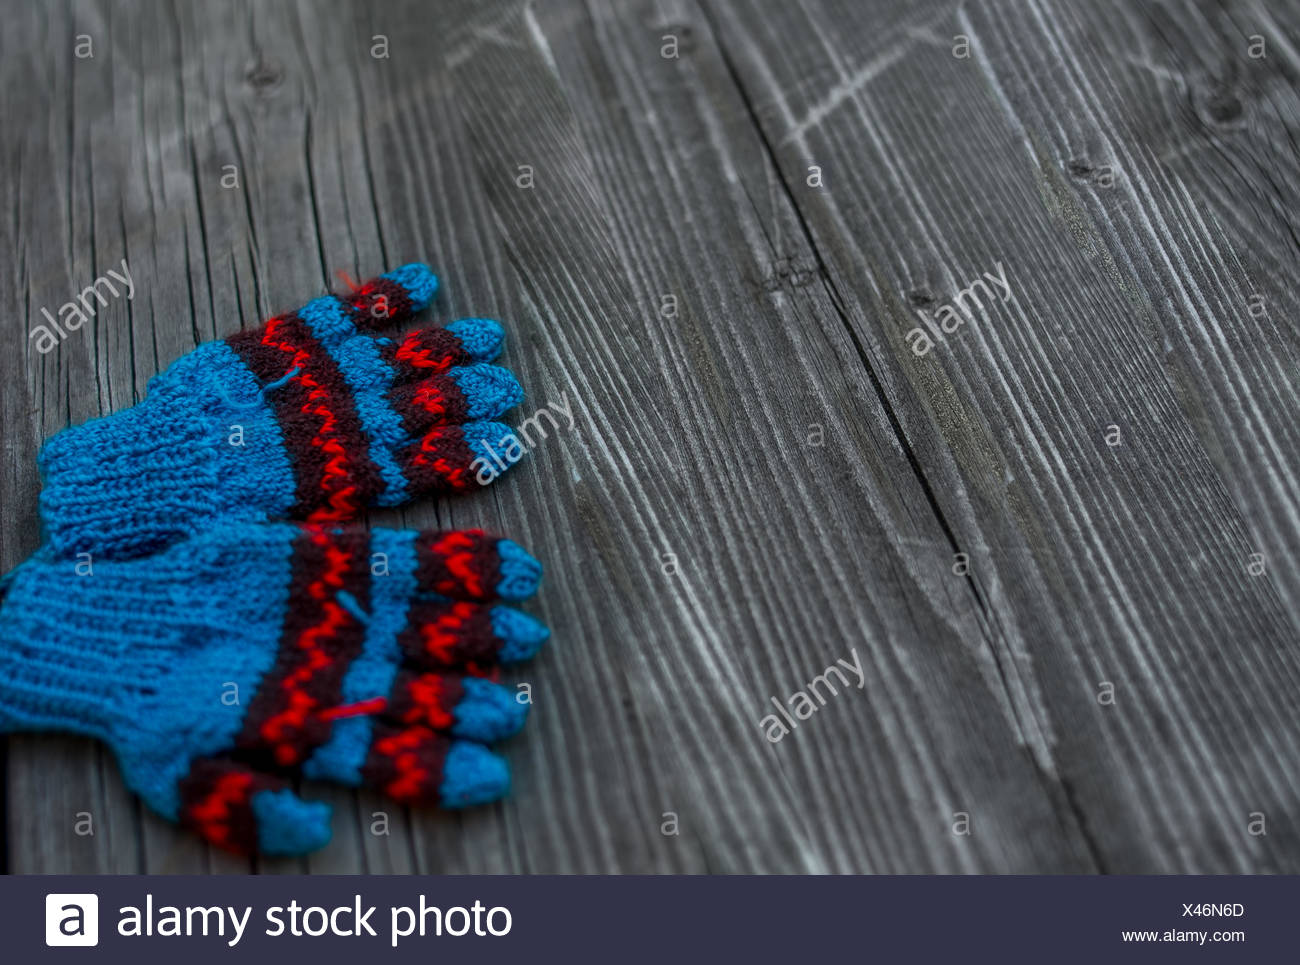 Close-Up Of Gloves On Wooden Table - Stock Image